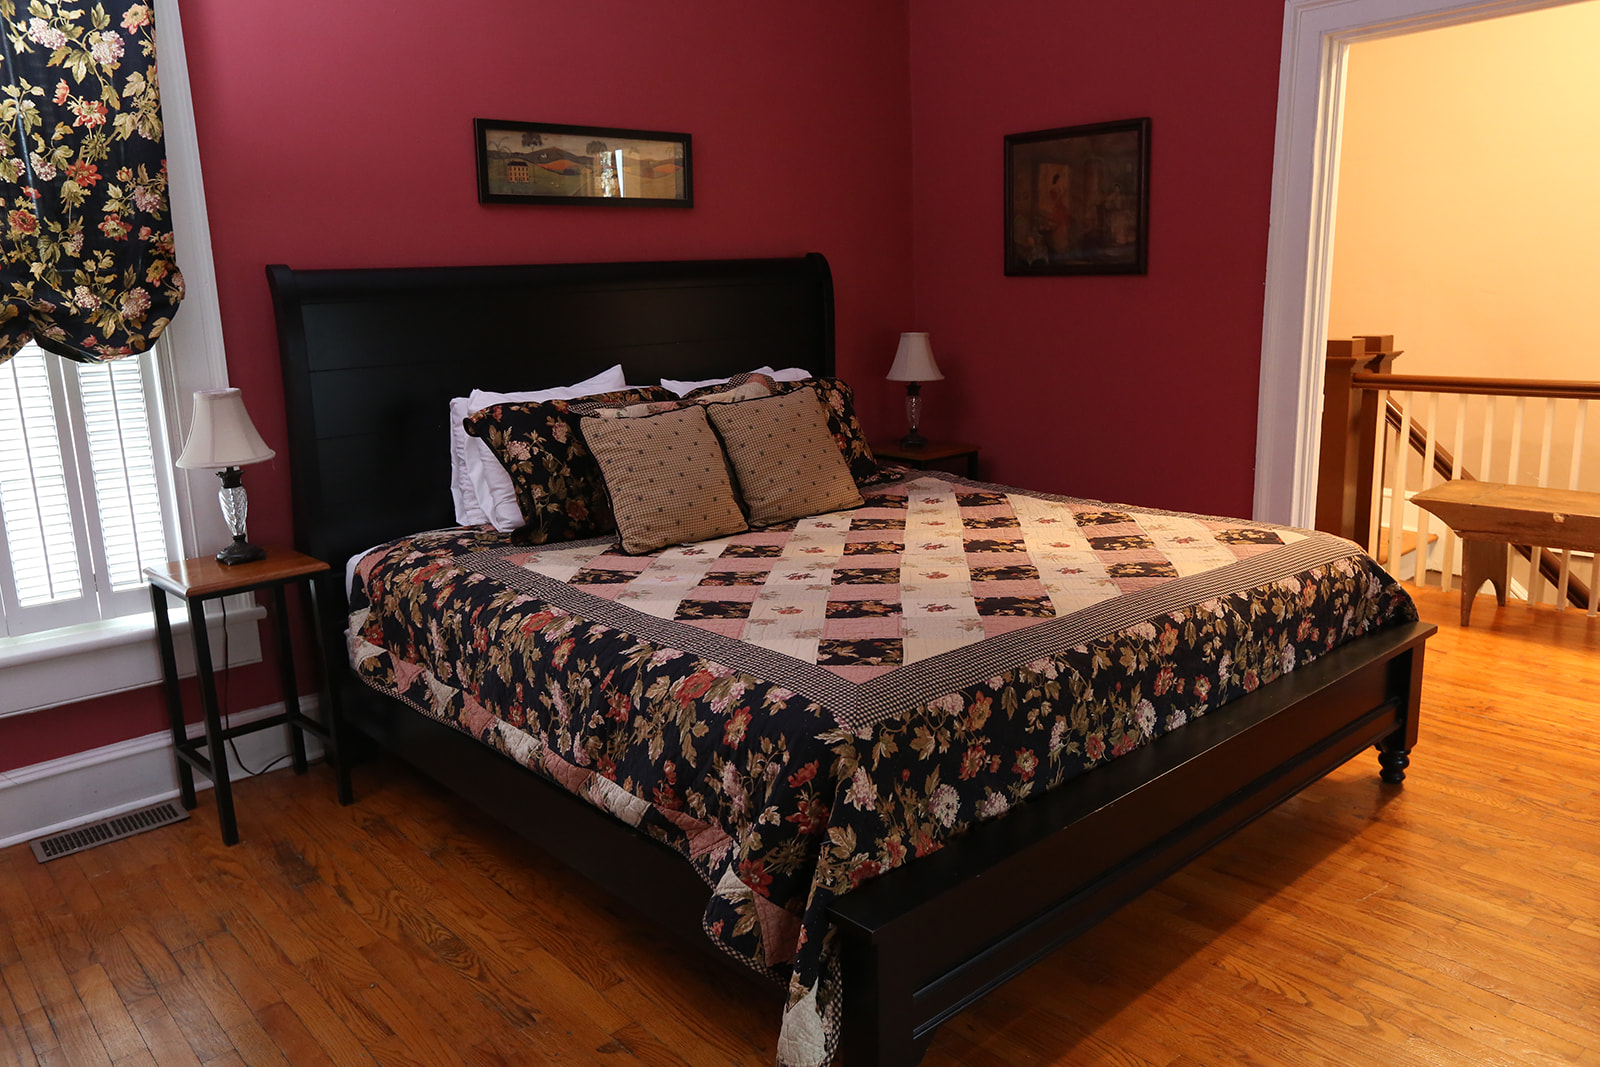 Red walls with queen size bed and black, red, and white quilt bedding with black head board